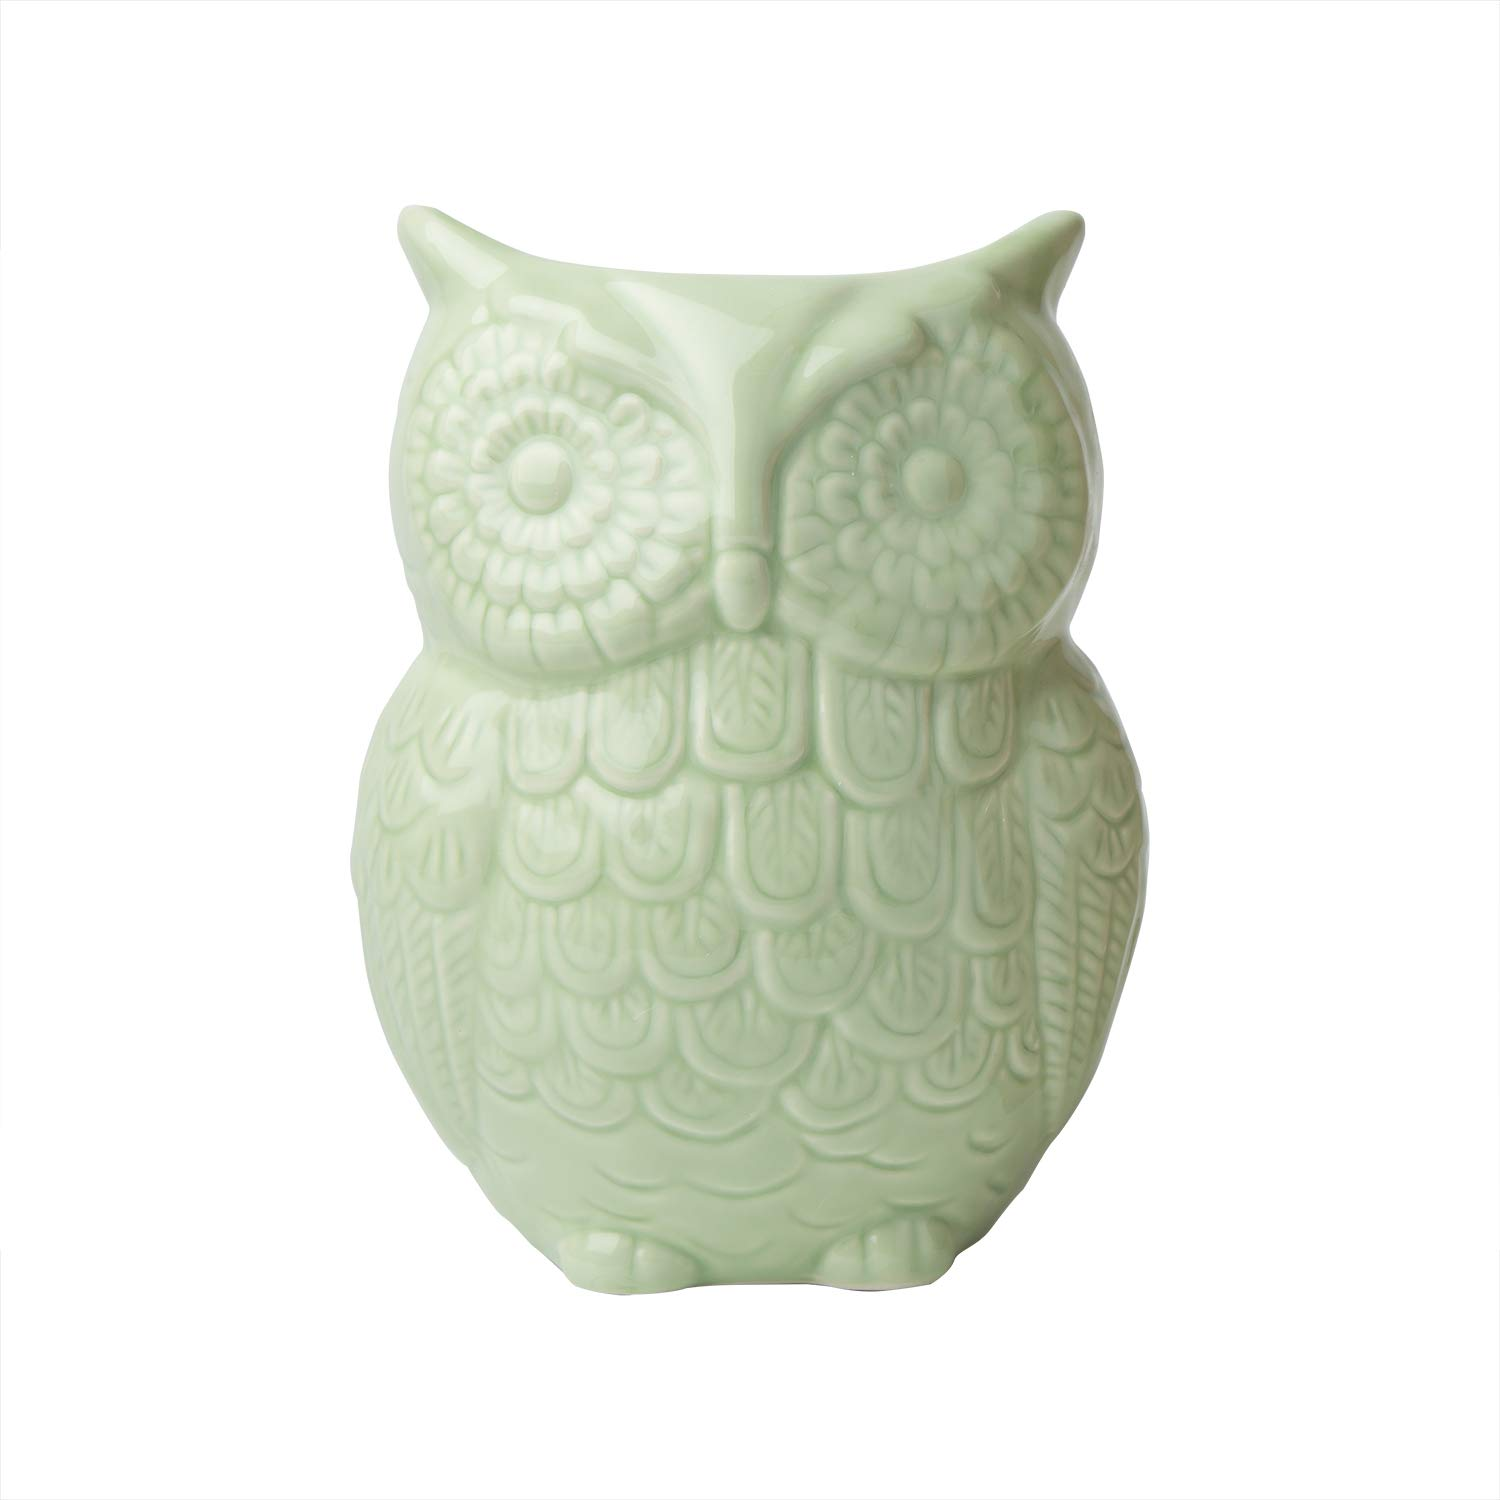 """Comfify Owl Utensil Holder Decorative Ceramic Cookware Crock & Organizer, in Lovely Green Color - Utensil Caddy and Perfect Kitchen Ceramic Décor Gift - 5"""" x 7"""" x 4"""" Size"""